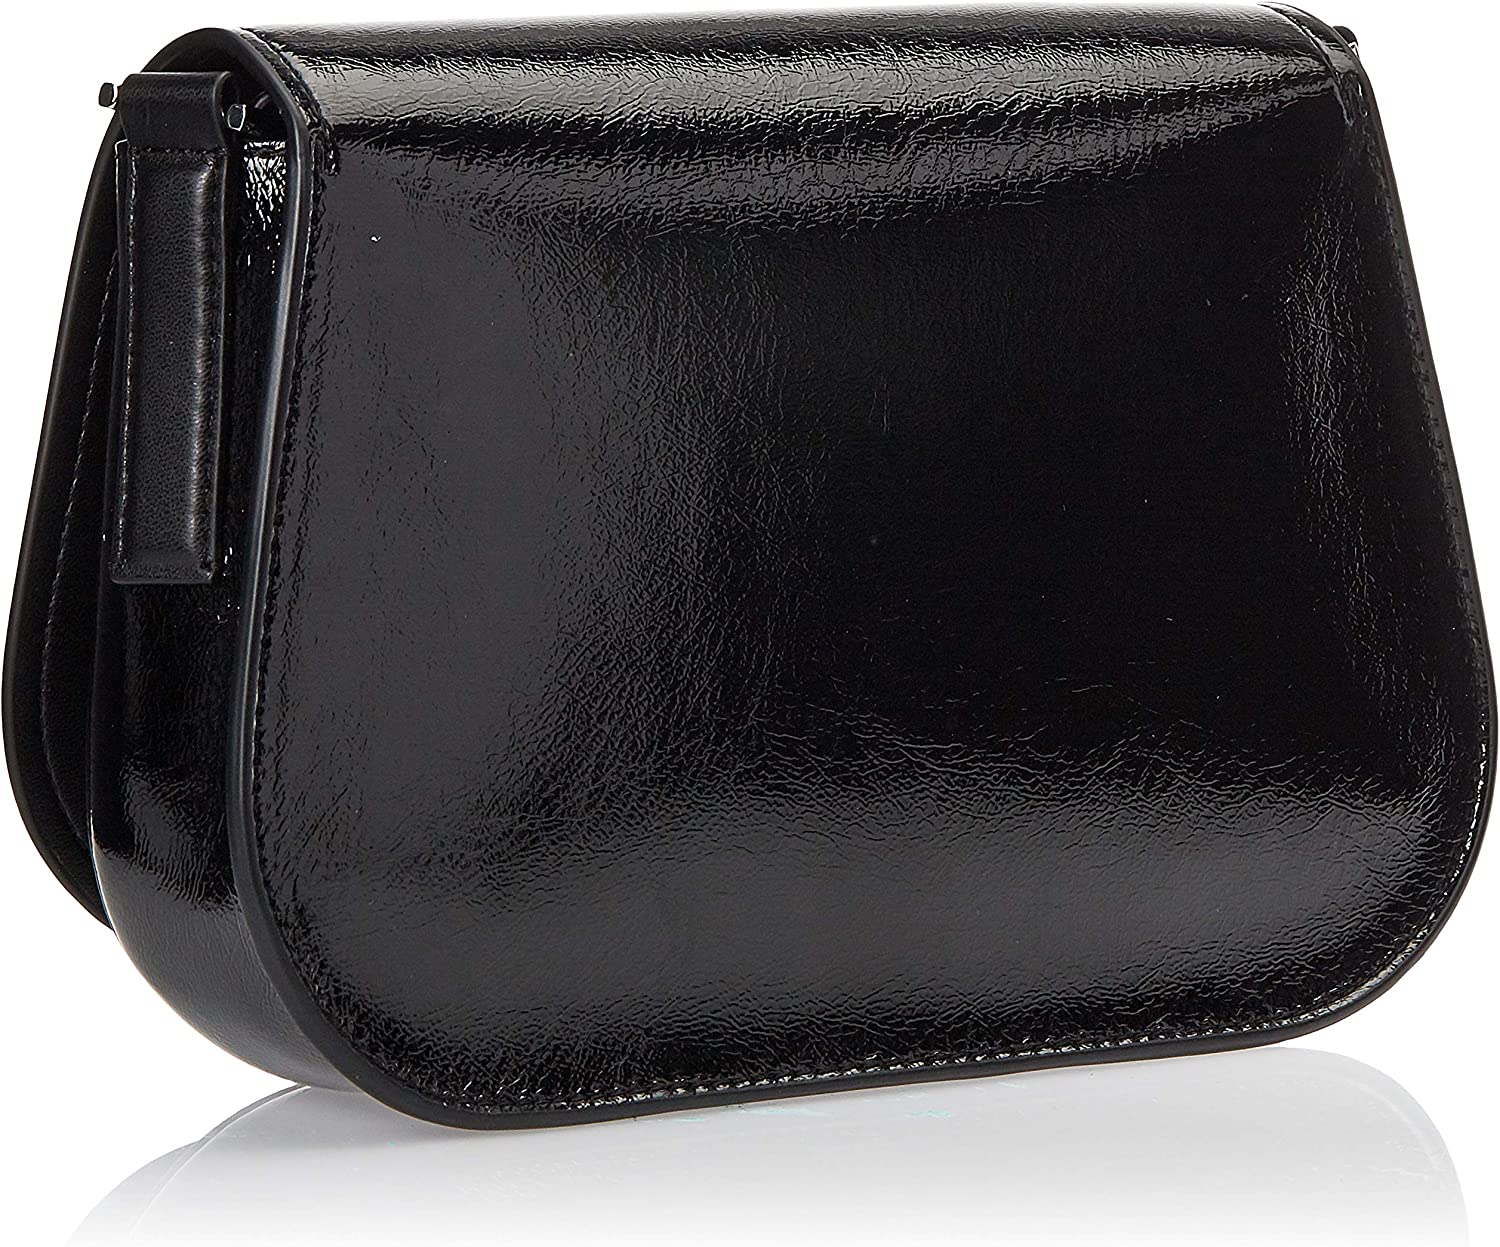 Calvin Klein - Dressed Up Shoulder Bag, Borse a spalla Donna Nero (Black)